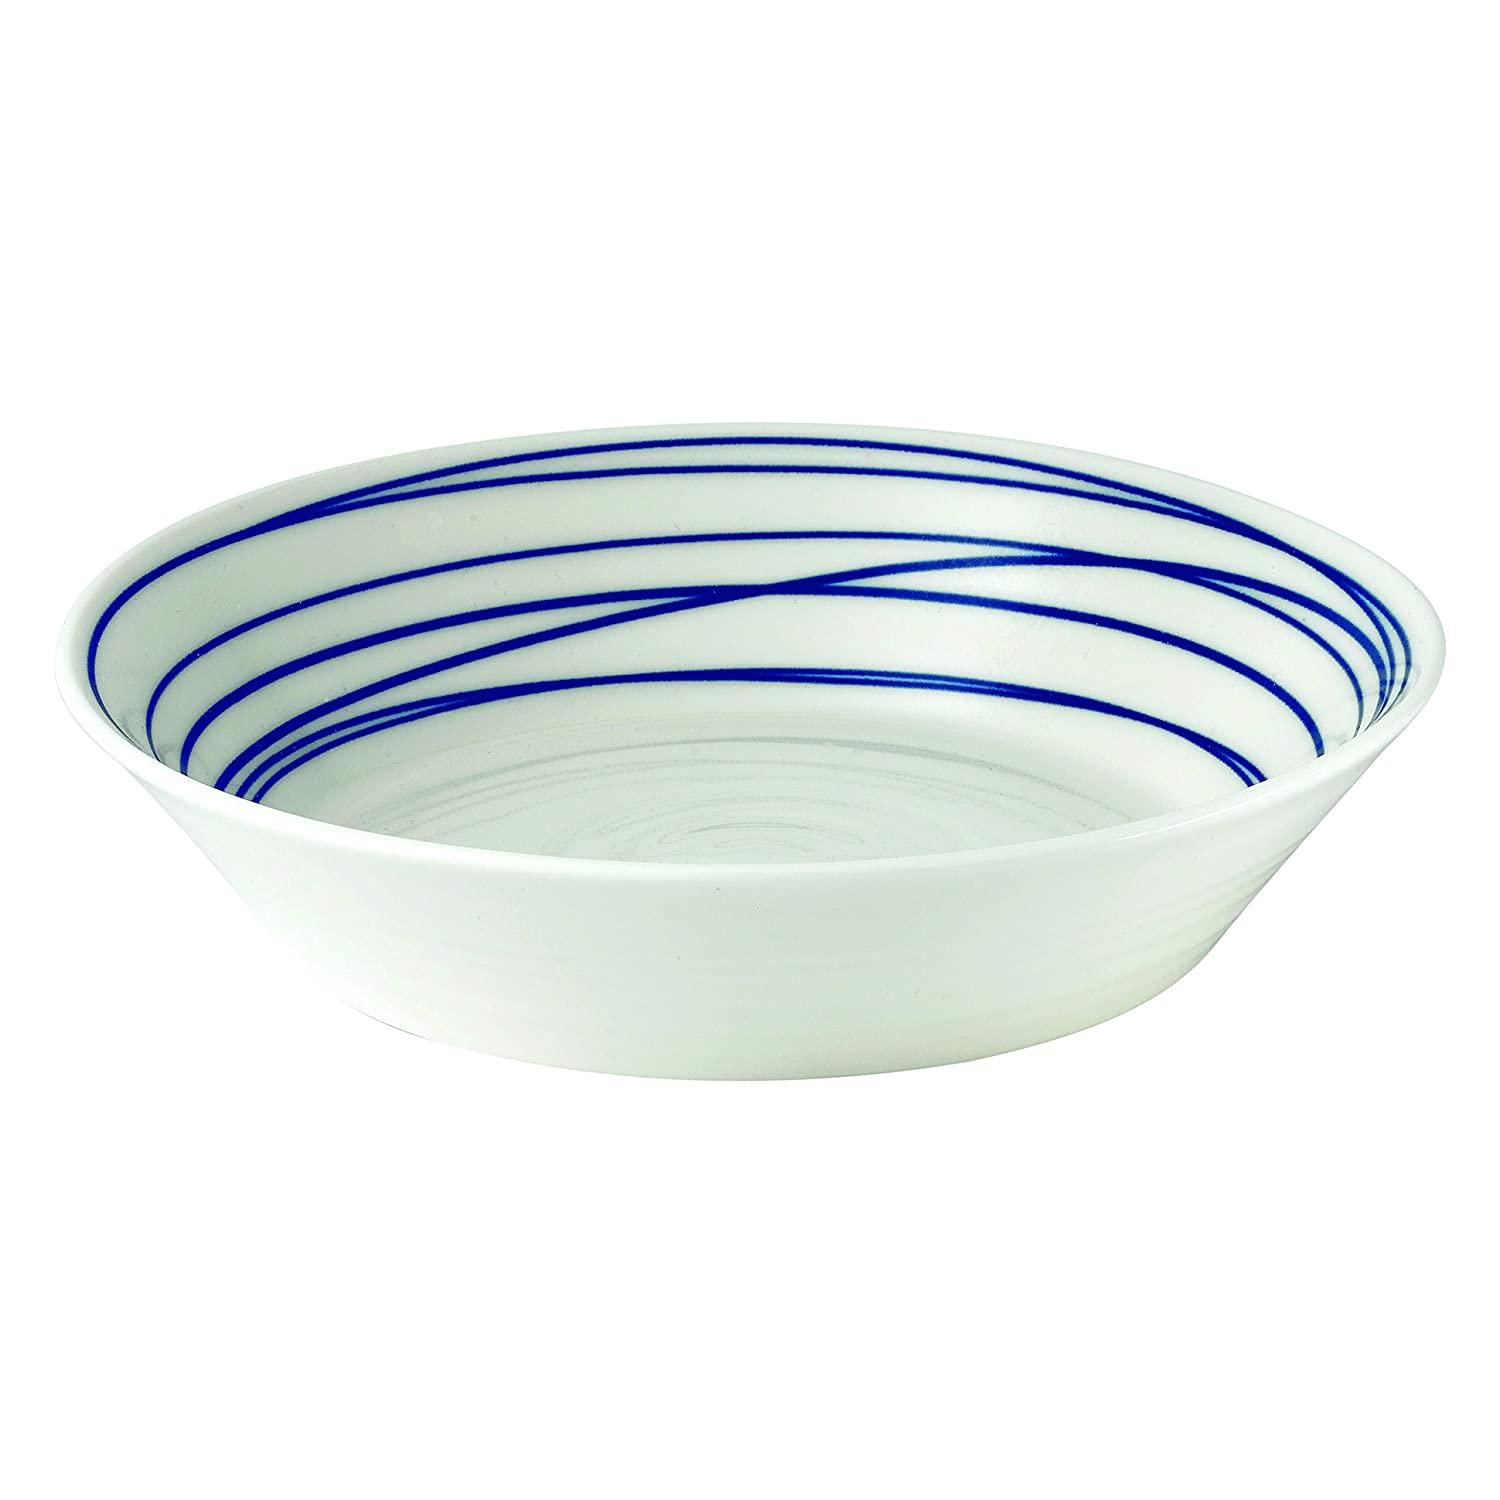 Royal Doulton Pacific Pasta Bowl Lines, 8.6